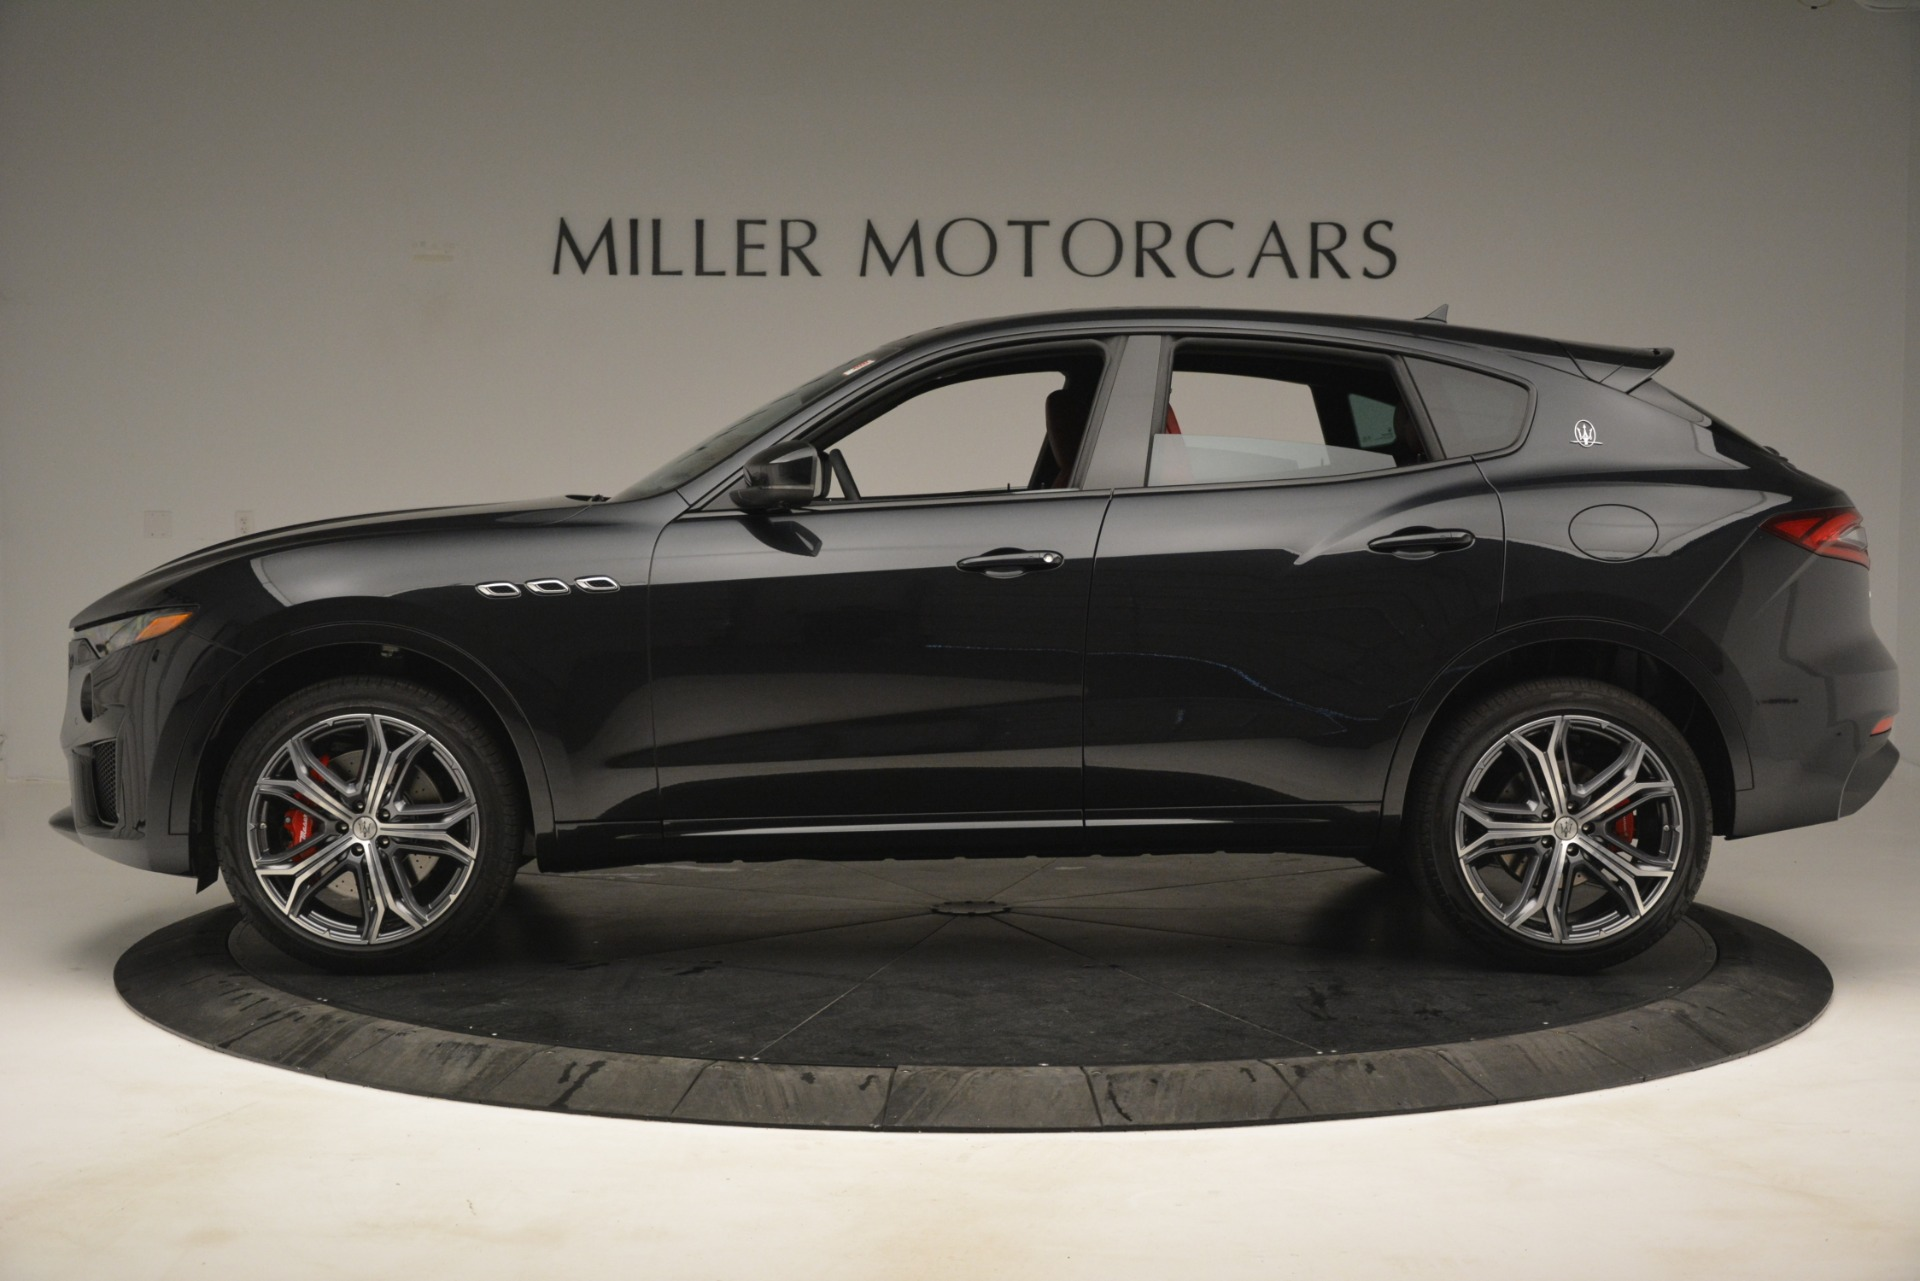 New 2019 Maserati Levante GTS For Sale In Westport, CT 3023_p3